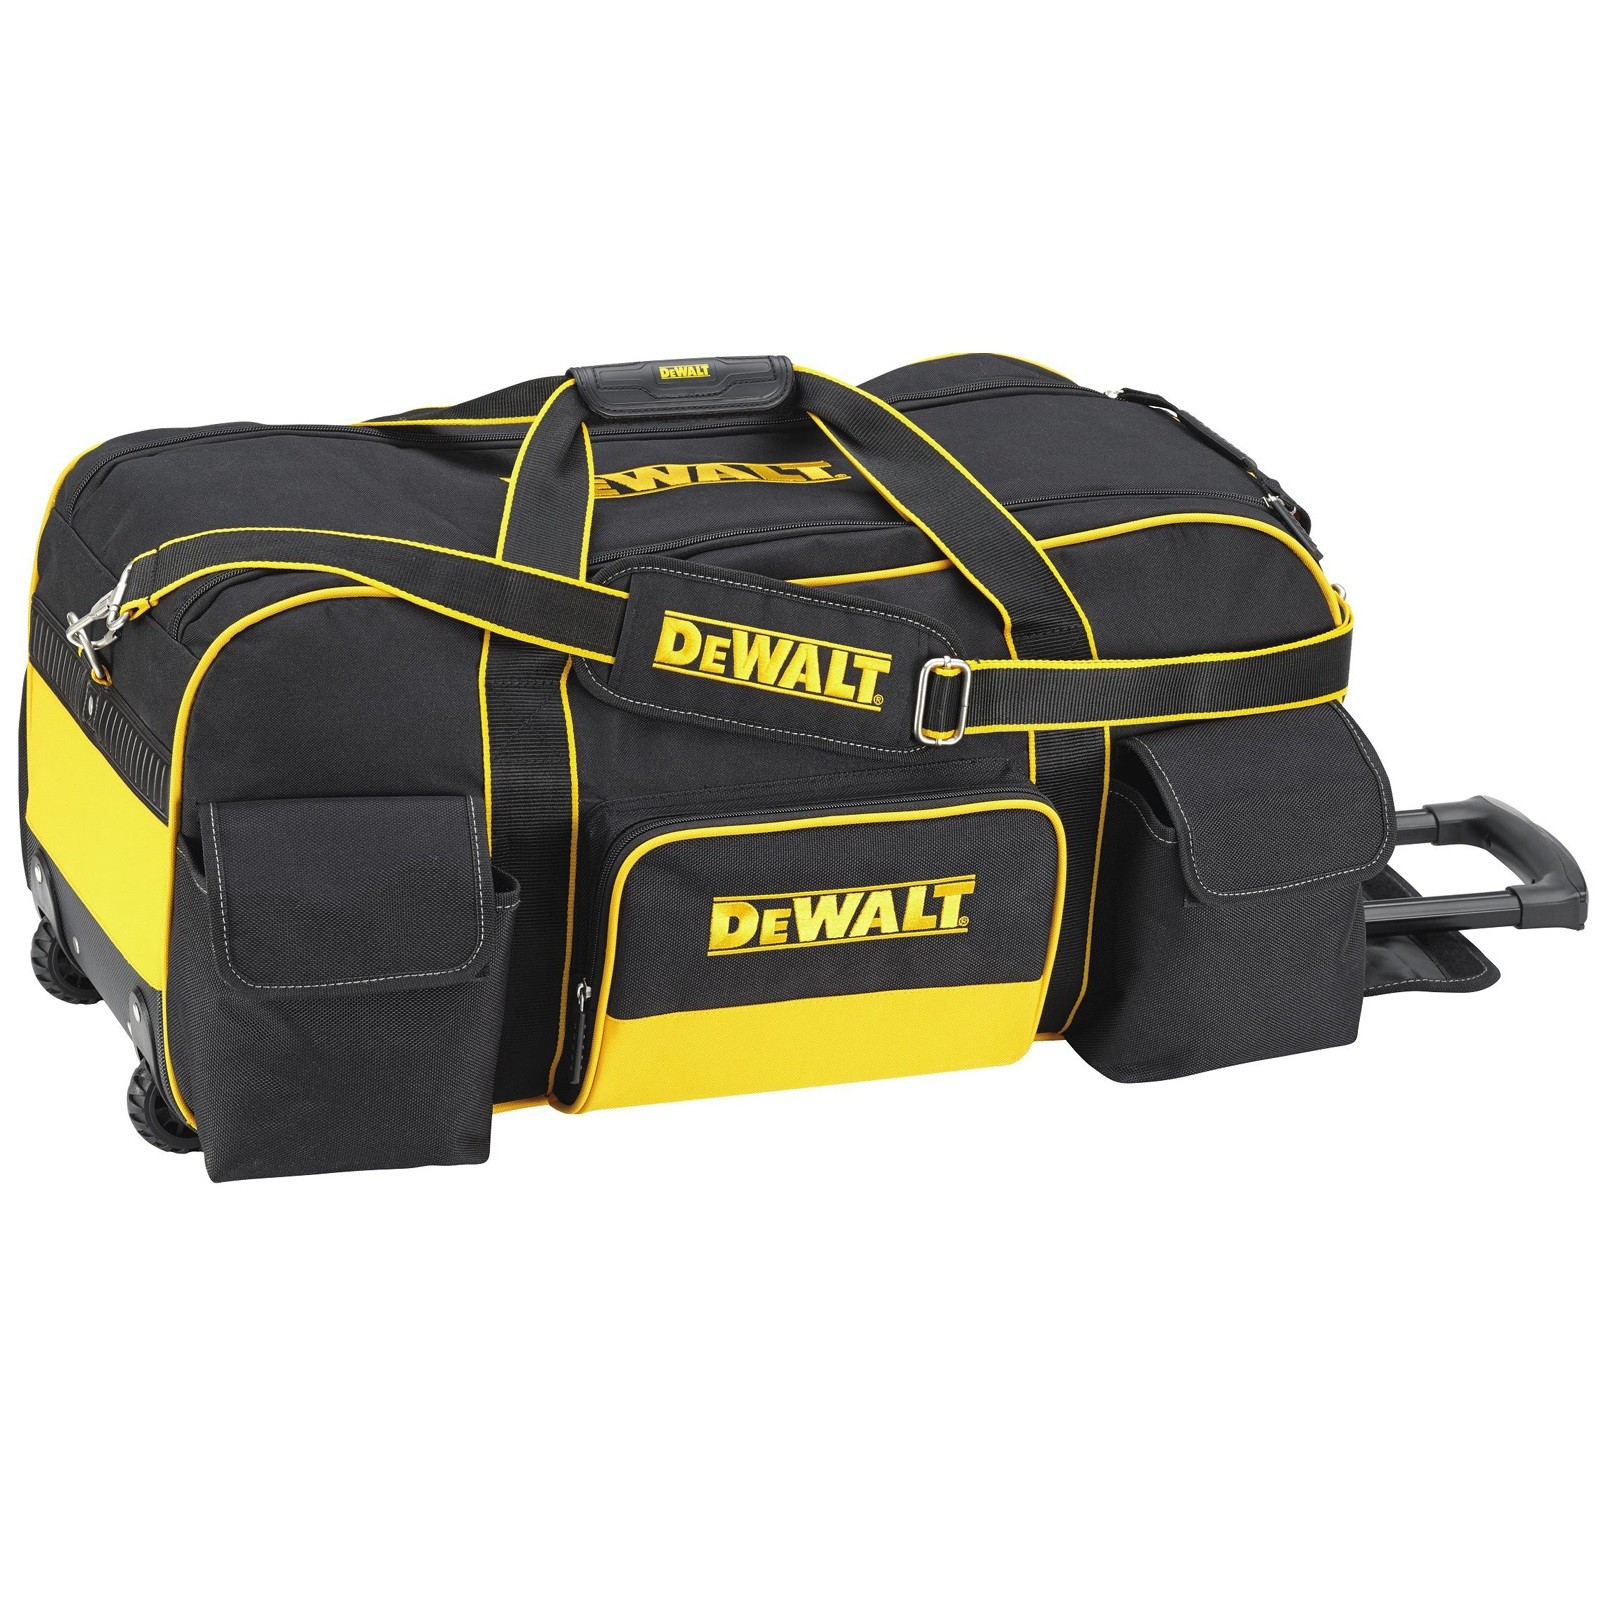 DeWalt DWST1-79210 Large Duffel Trolley Bag with Wheels 26""